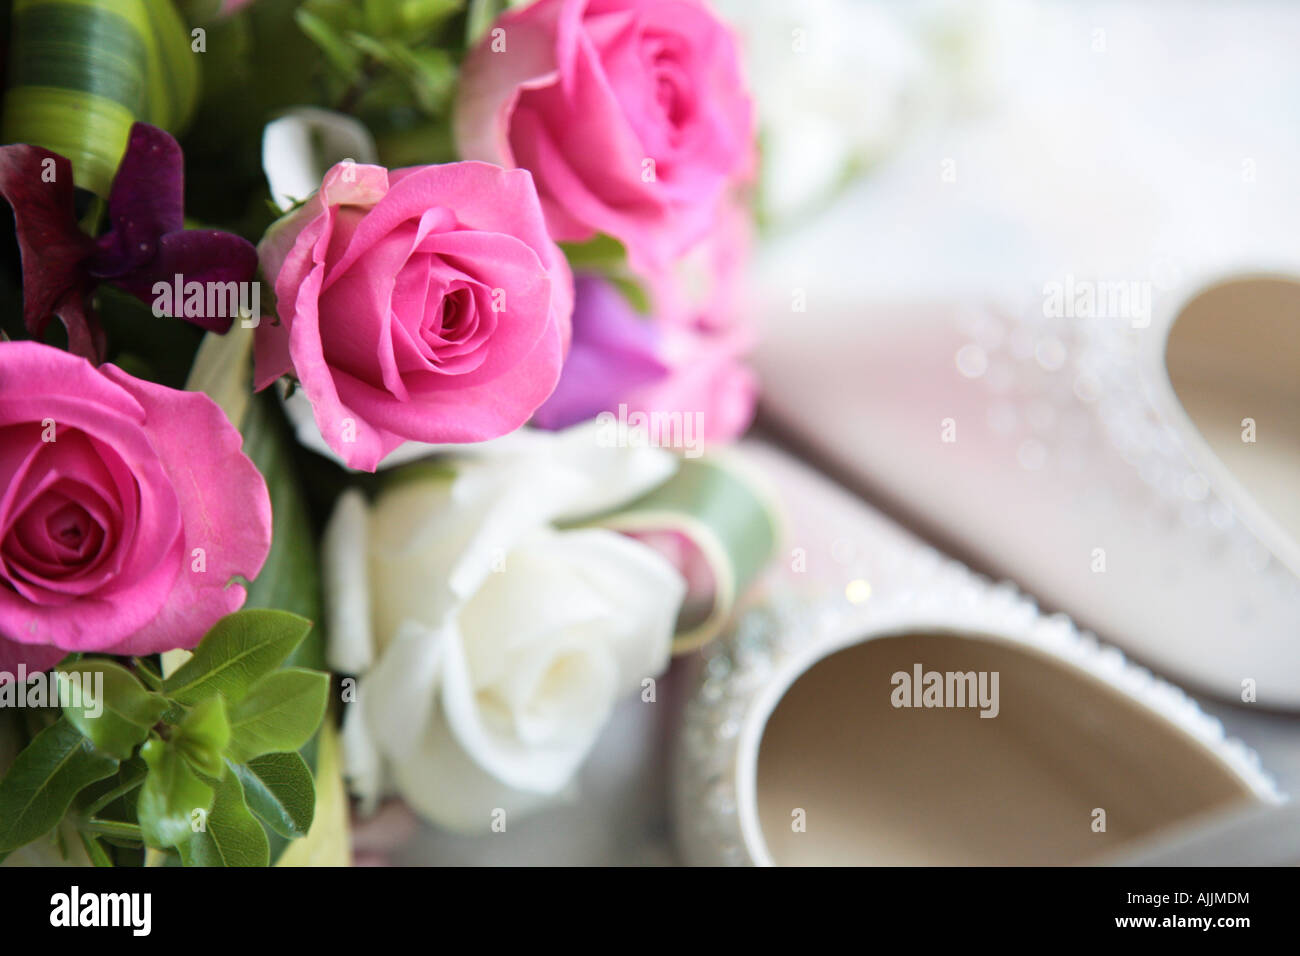 Marriage Bridal Bouquet Flowers Stock Photos & Marriage Bridal ...